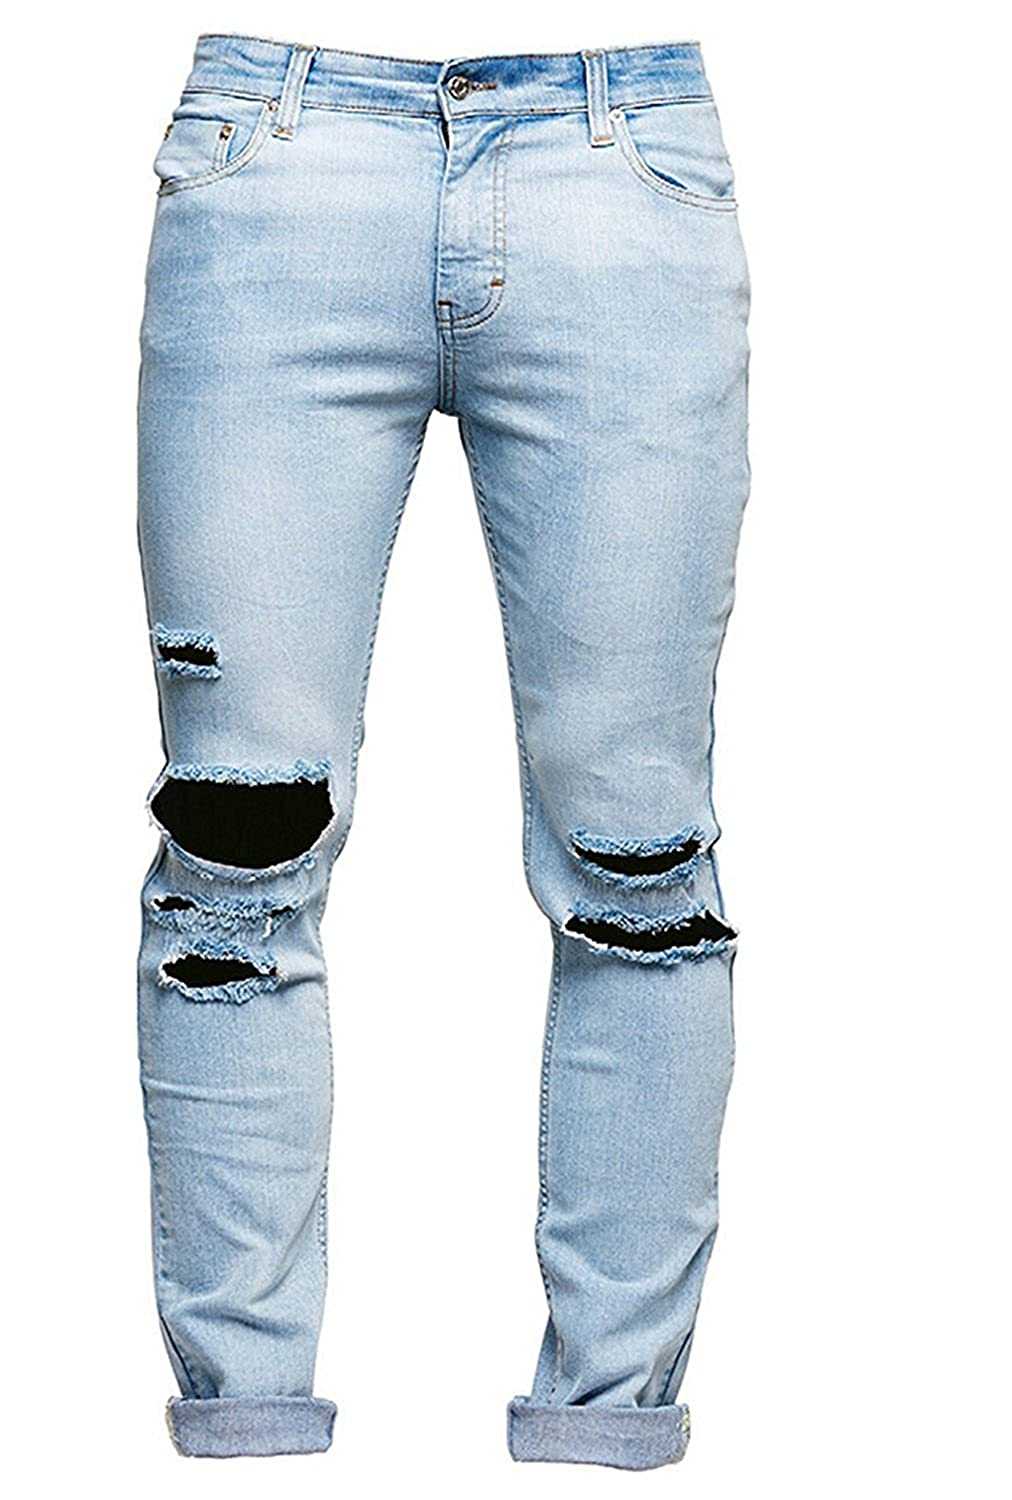 4363b3f6521 B Dressy Fashion Handsome Men s Skinny Ripped Washed Jeans Destroyed Knee  Holes Denim Broken Light Blue Pants at Amazon Men s Clothing store